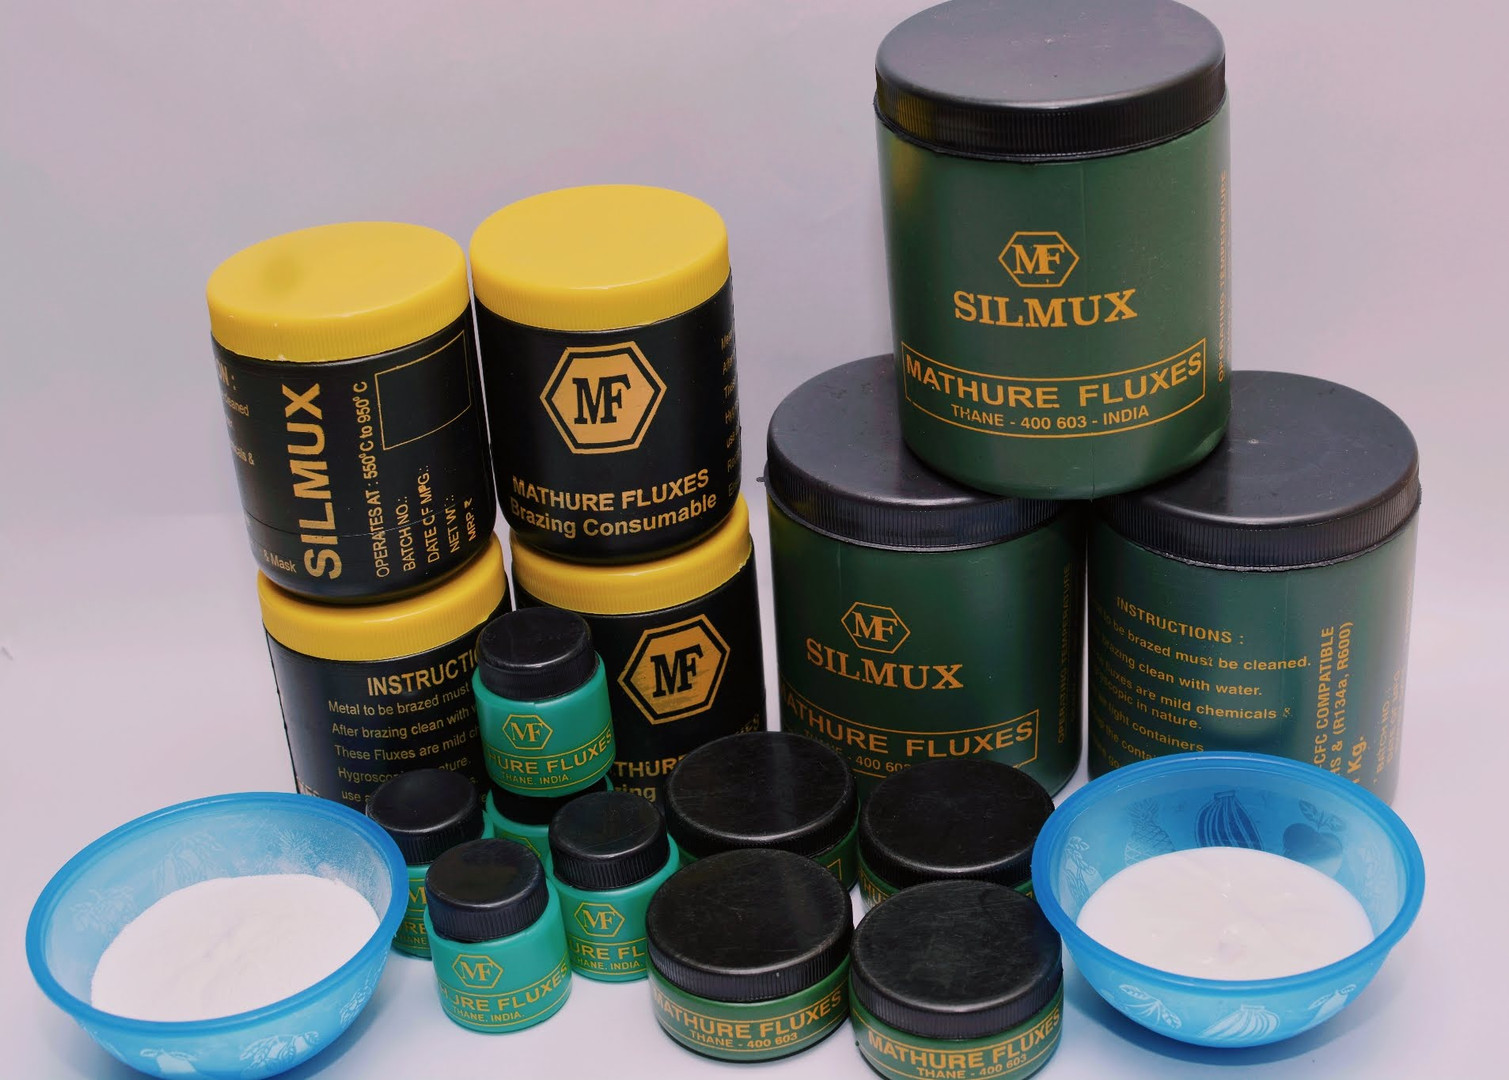 Brazing and soldering fluxes manufactured by Mathure Metal Works